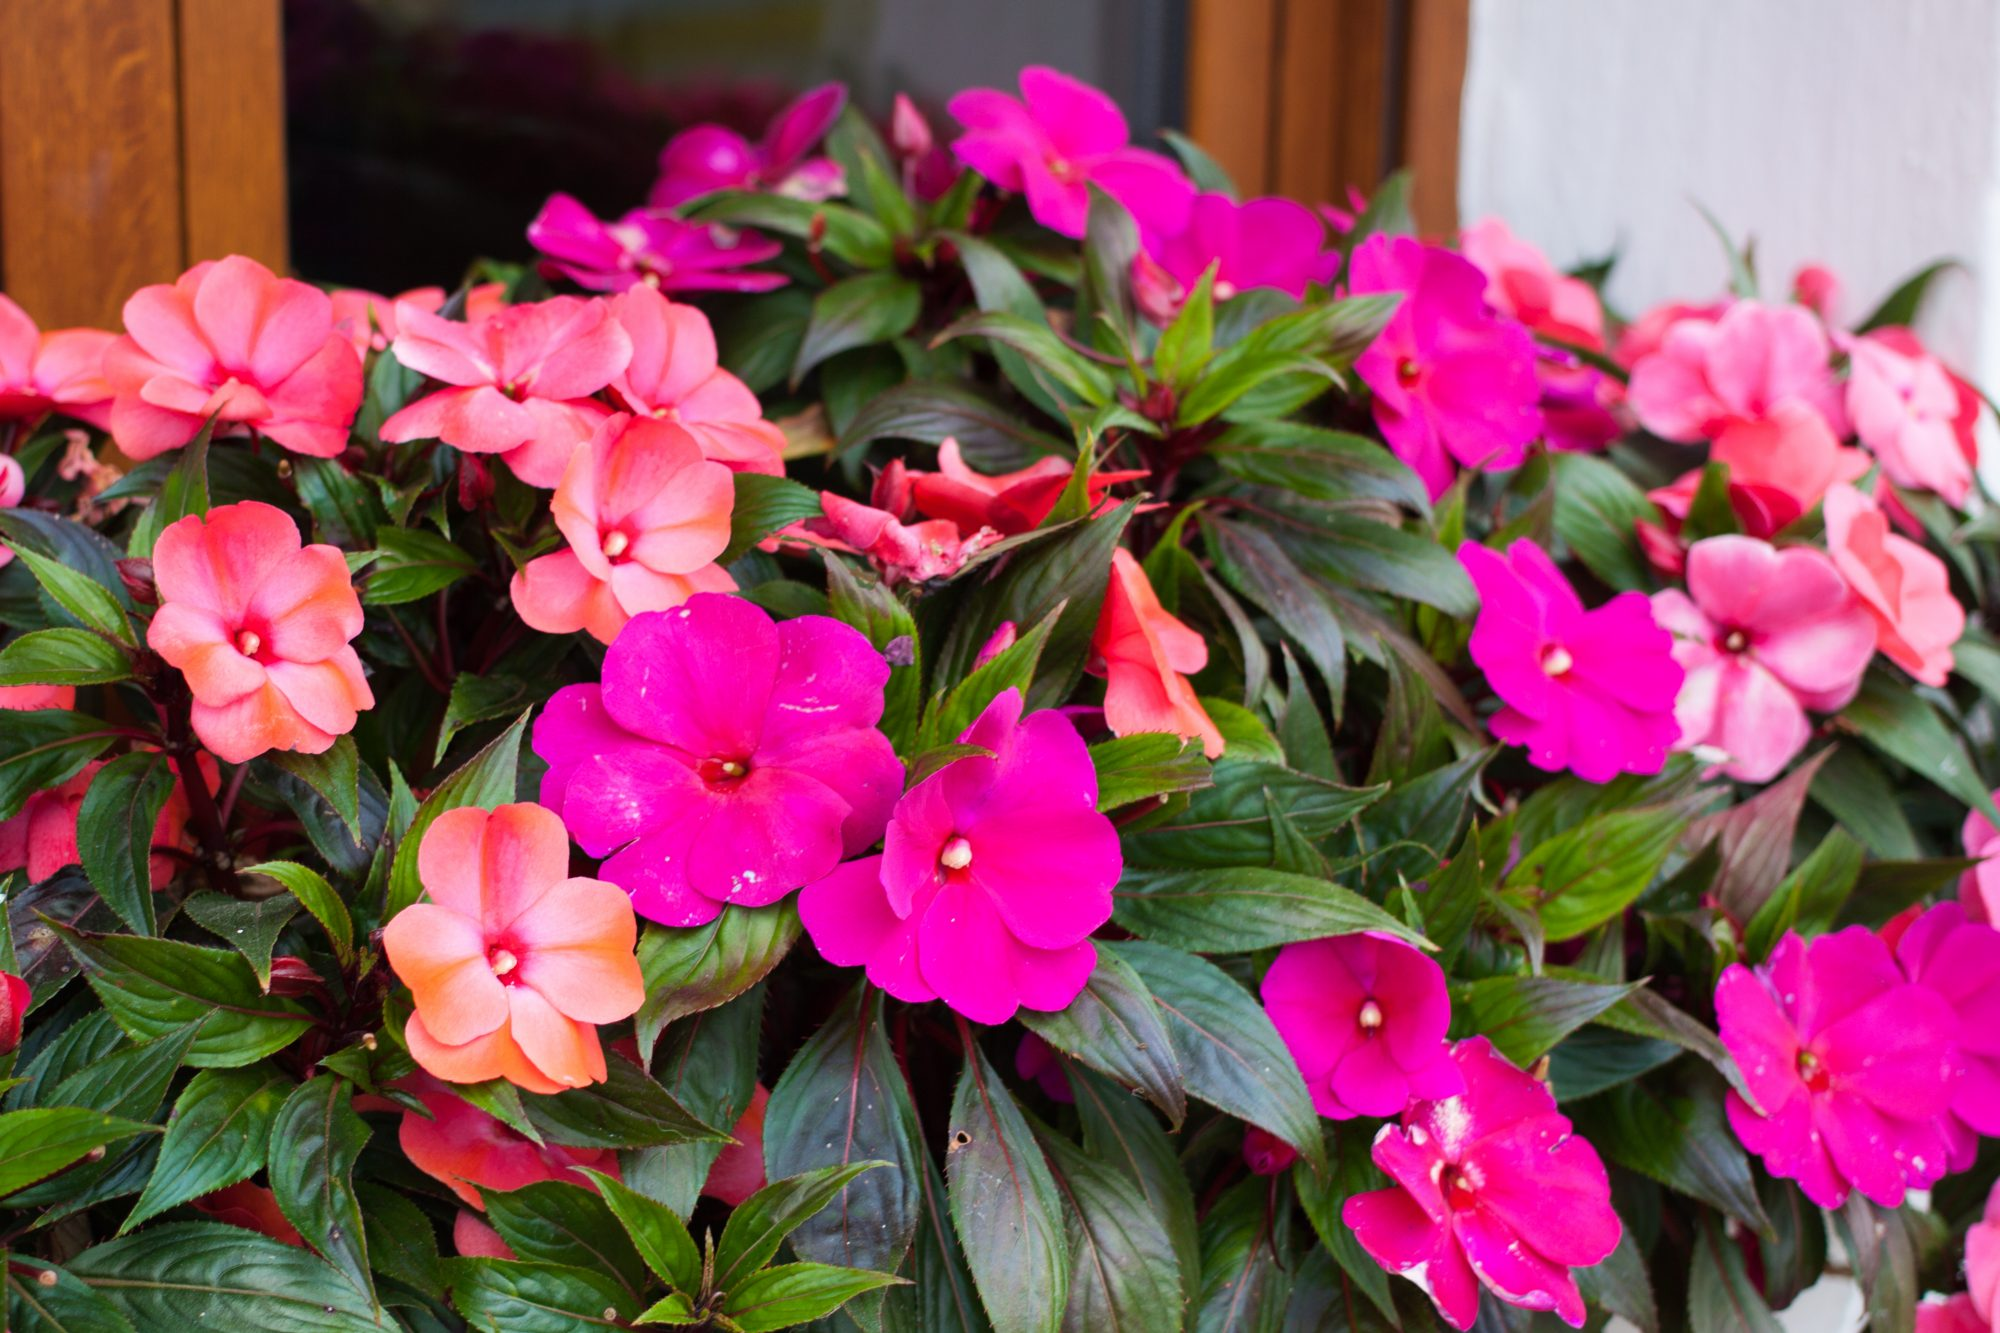 Bright pink impatiens hawkeri, the New Guinea impatiens, in bloom